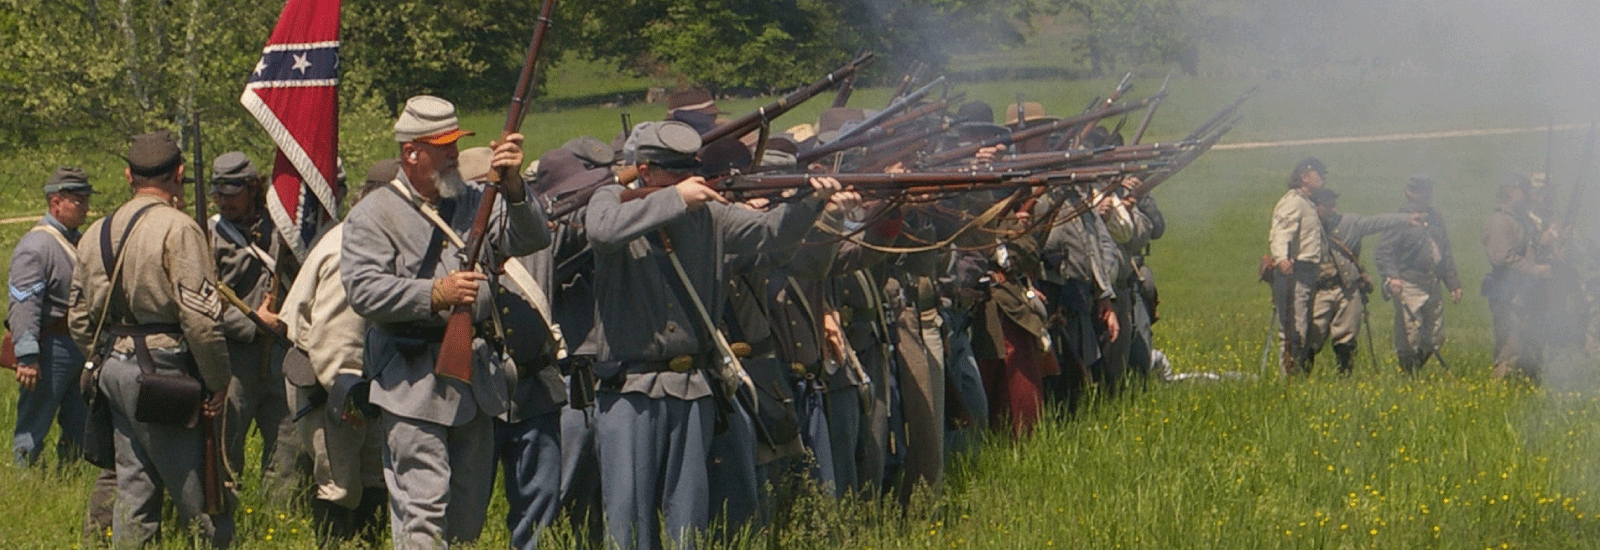 The National Guard in the Civil War